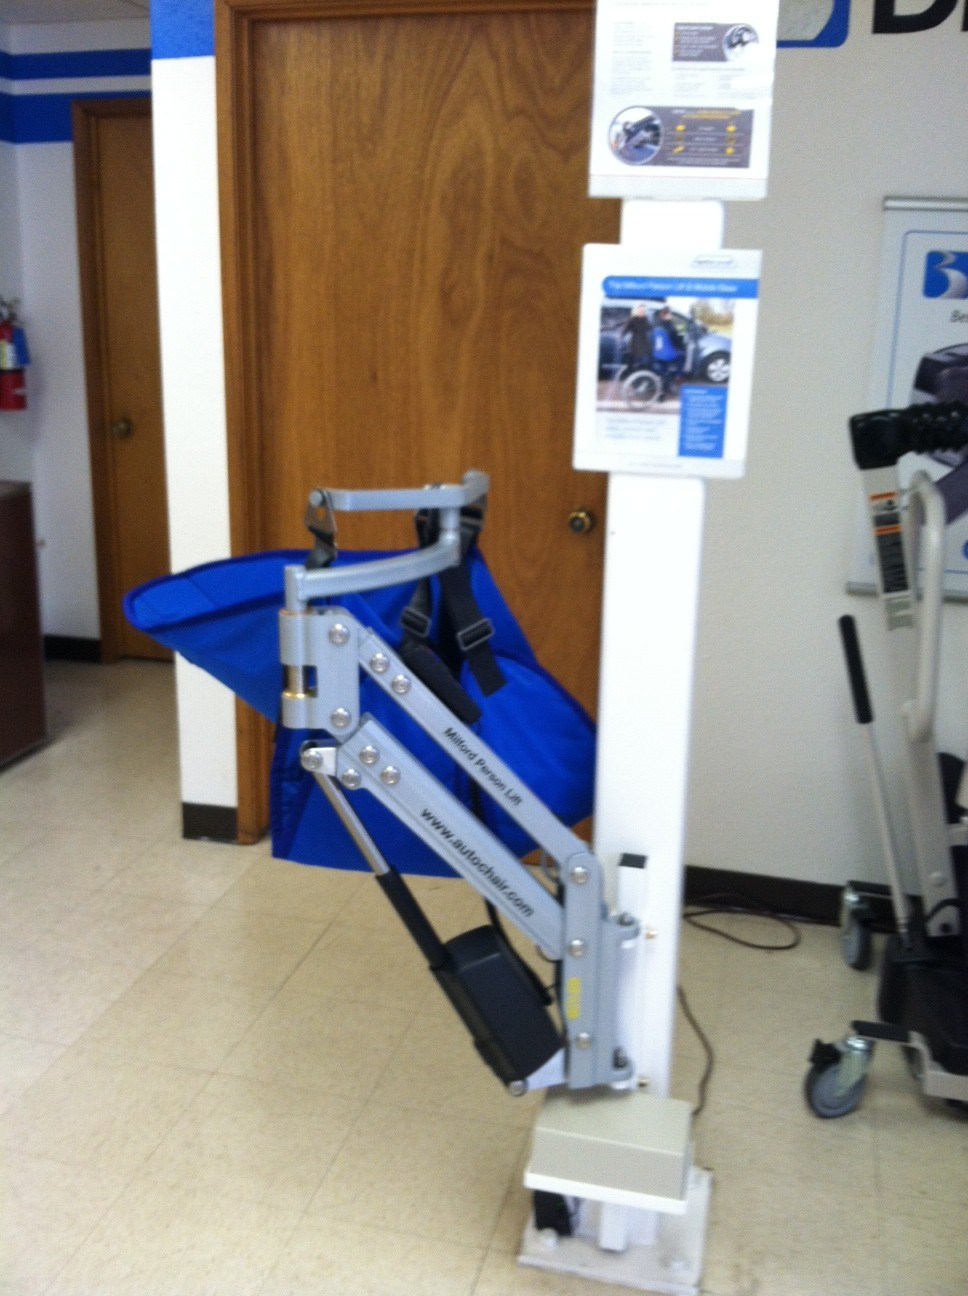 Alternative to Handicap accessible vehicles - All-Star Medical